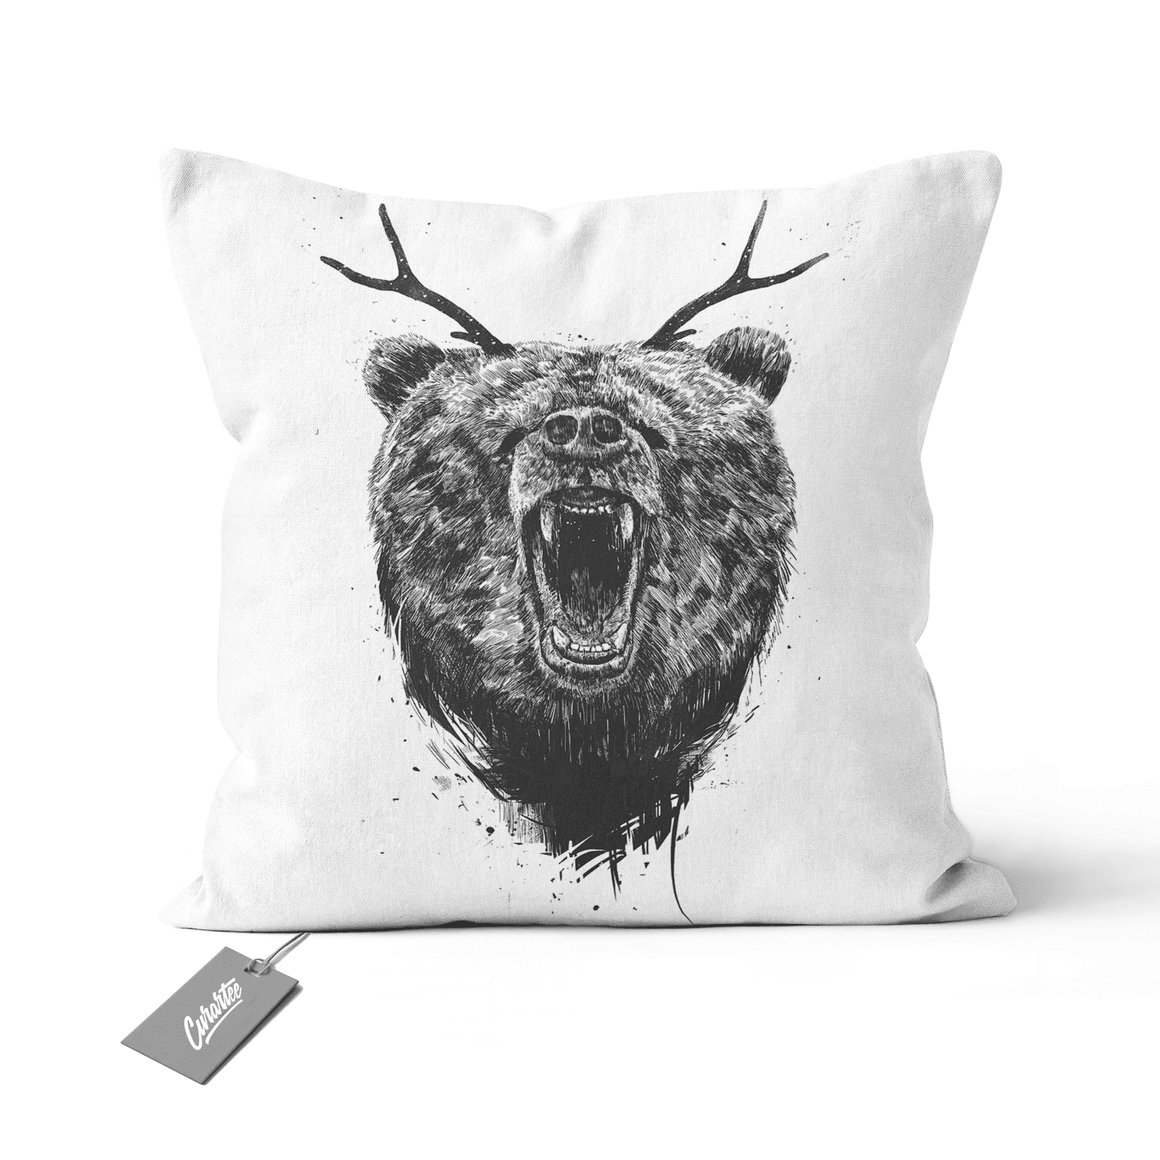 Angry Bear With Antlers Cushion - Premium Artwear Curartee